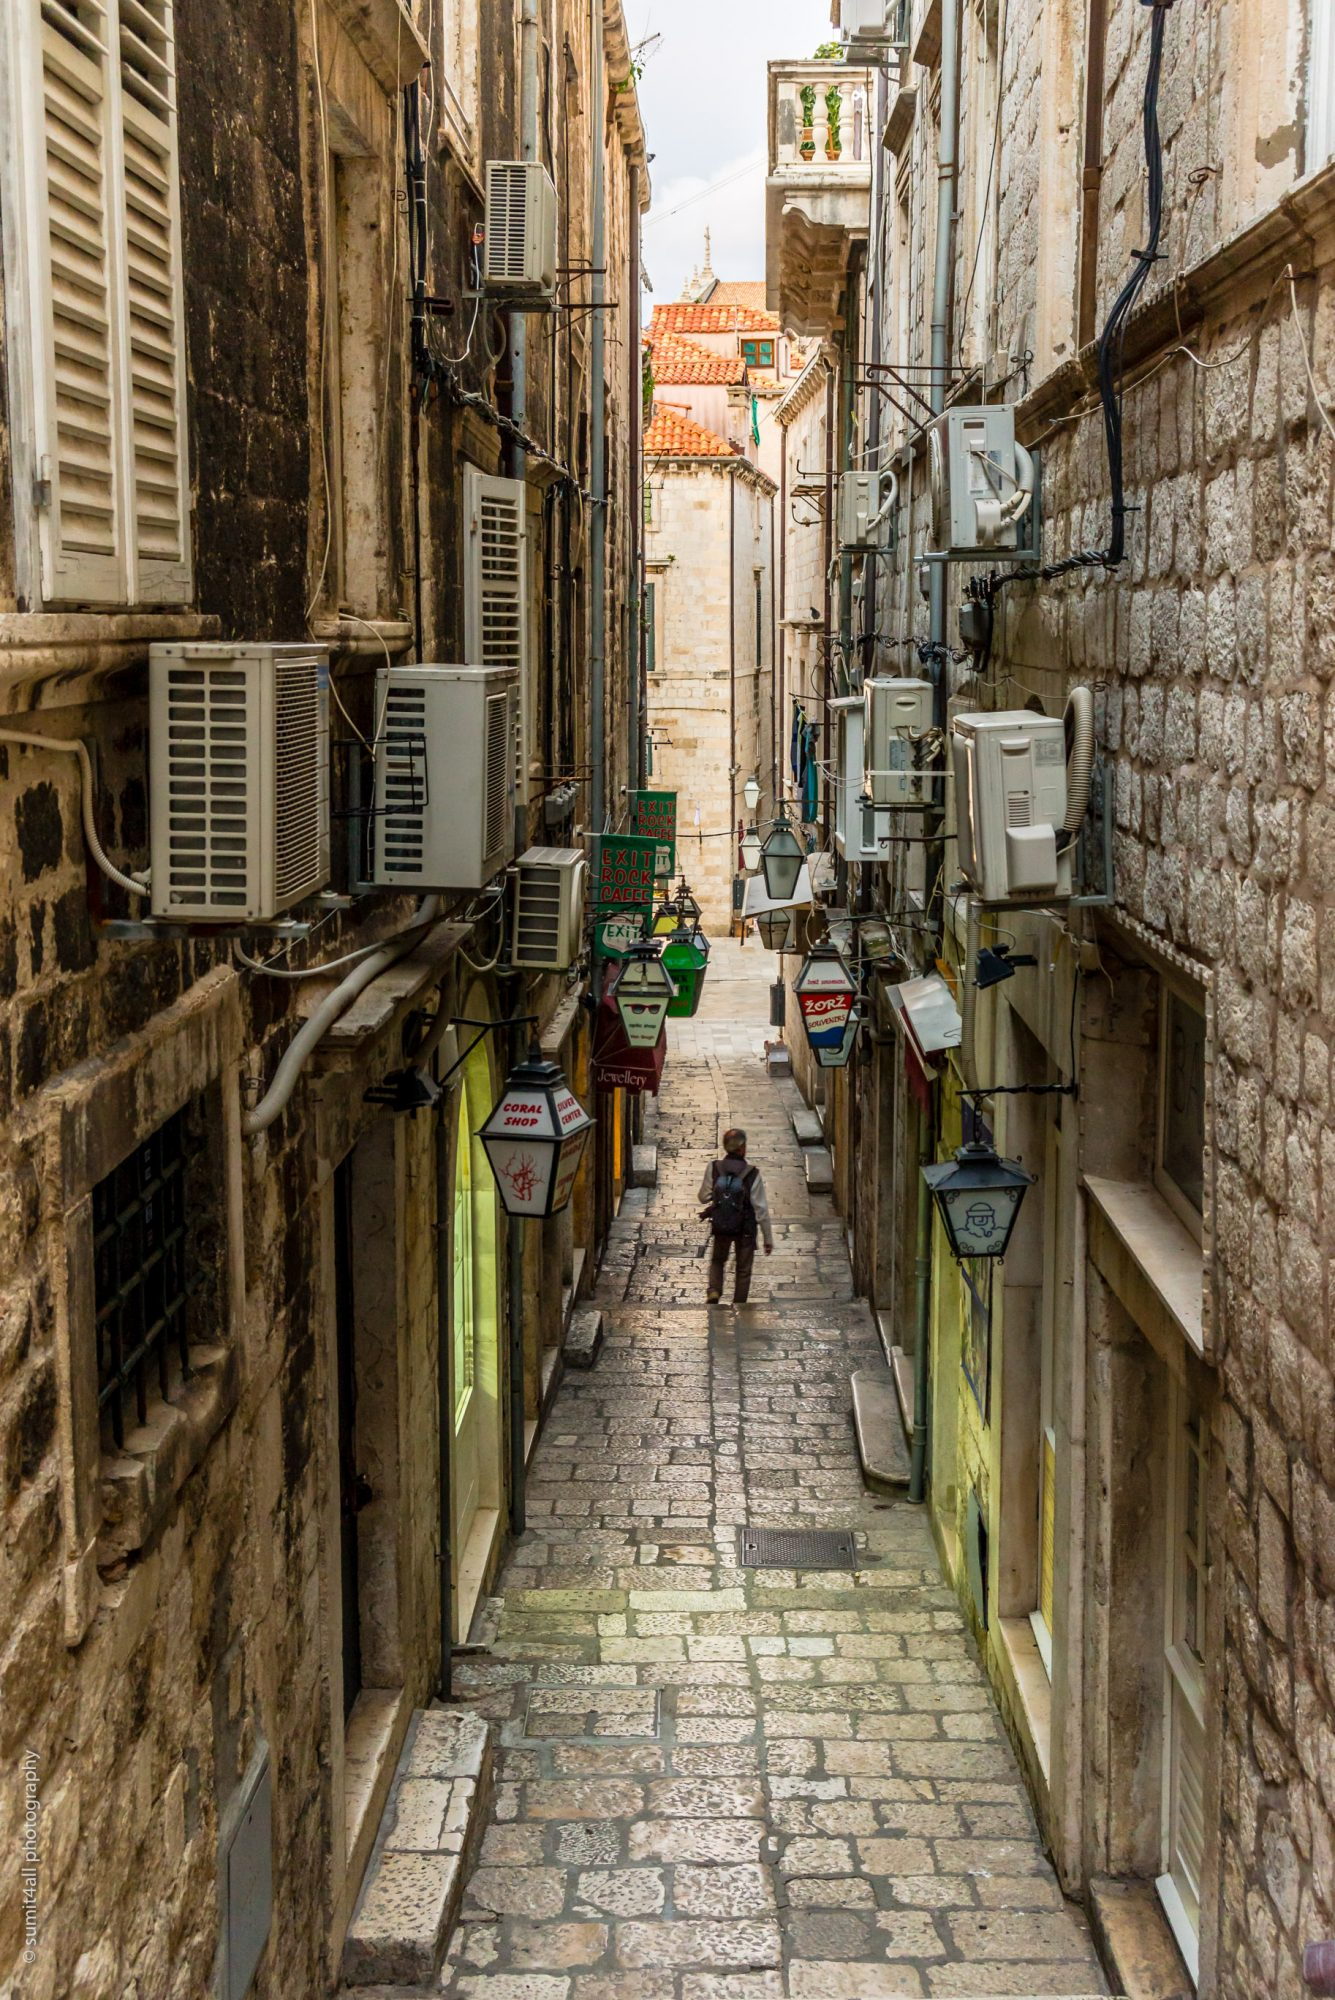 Narrow Street Scene in Old Town, Dubrovnik, Croatia